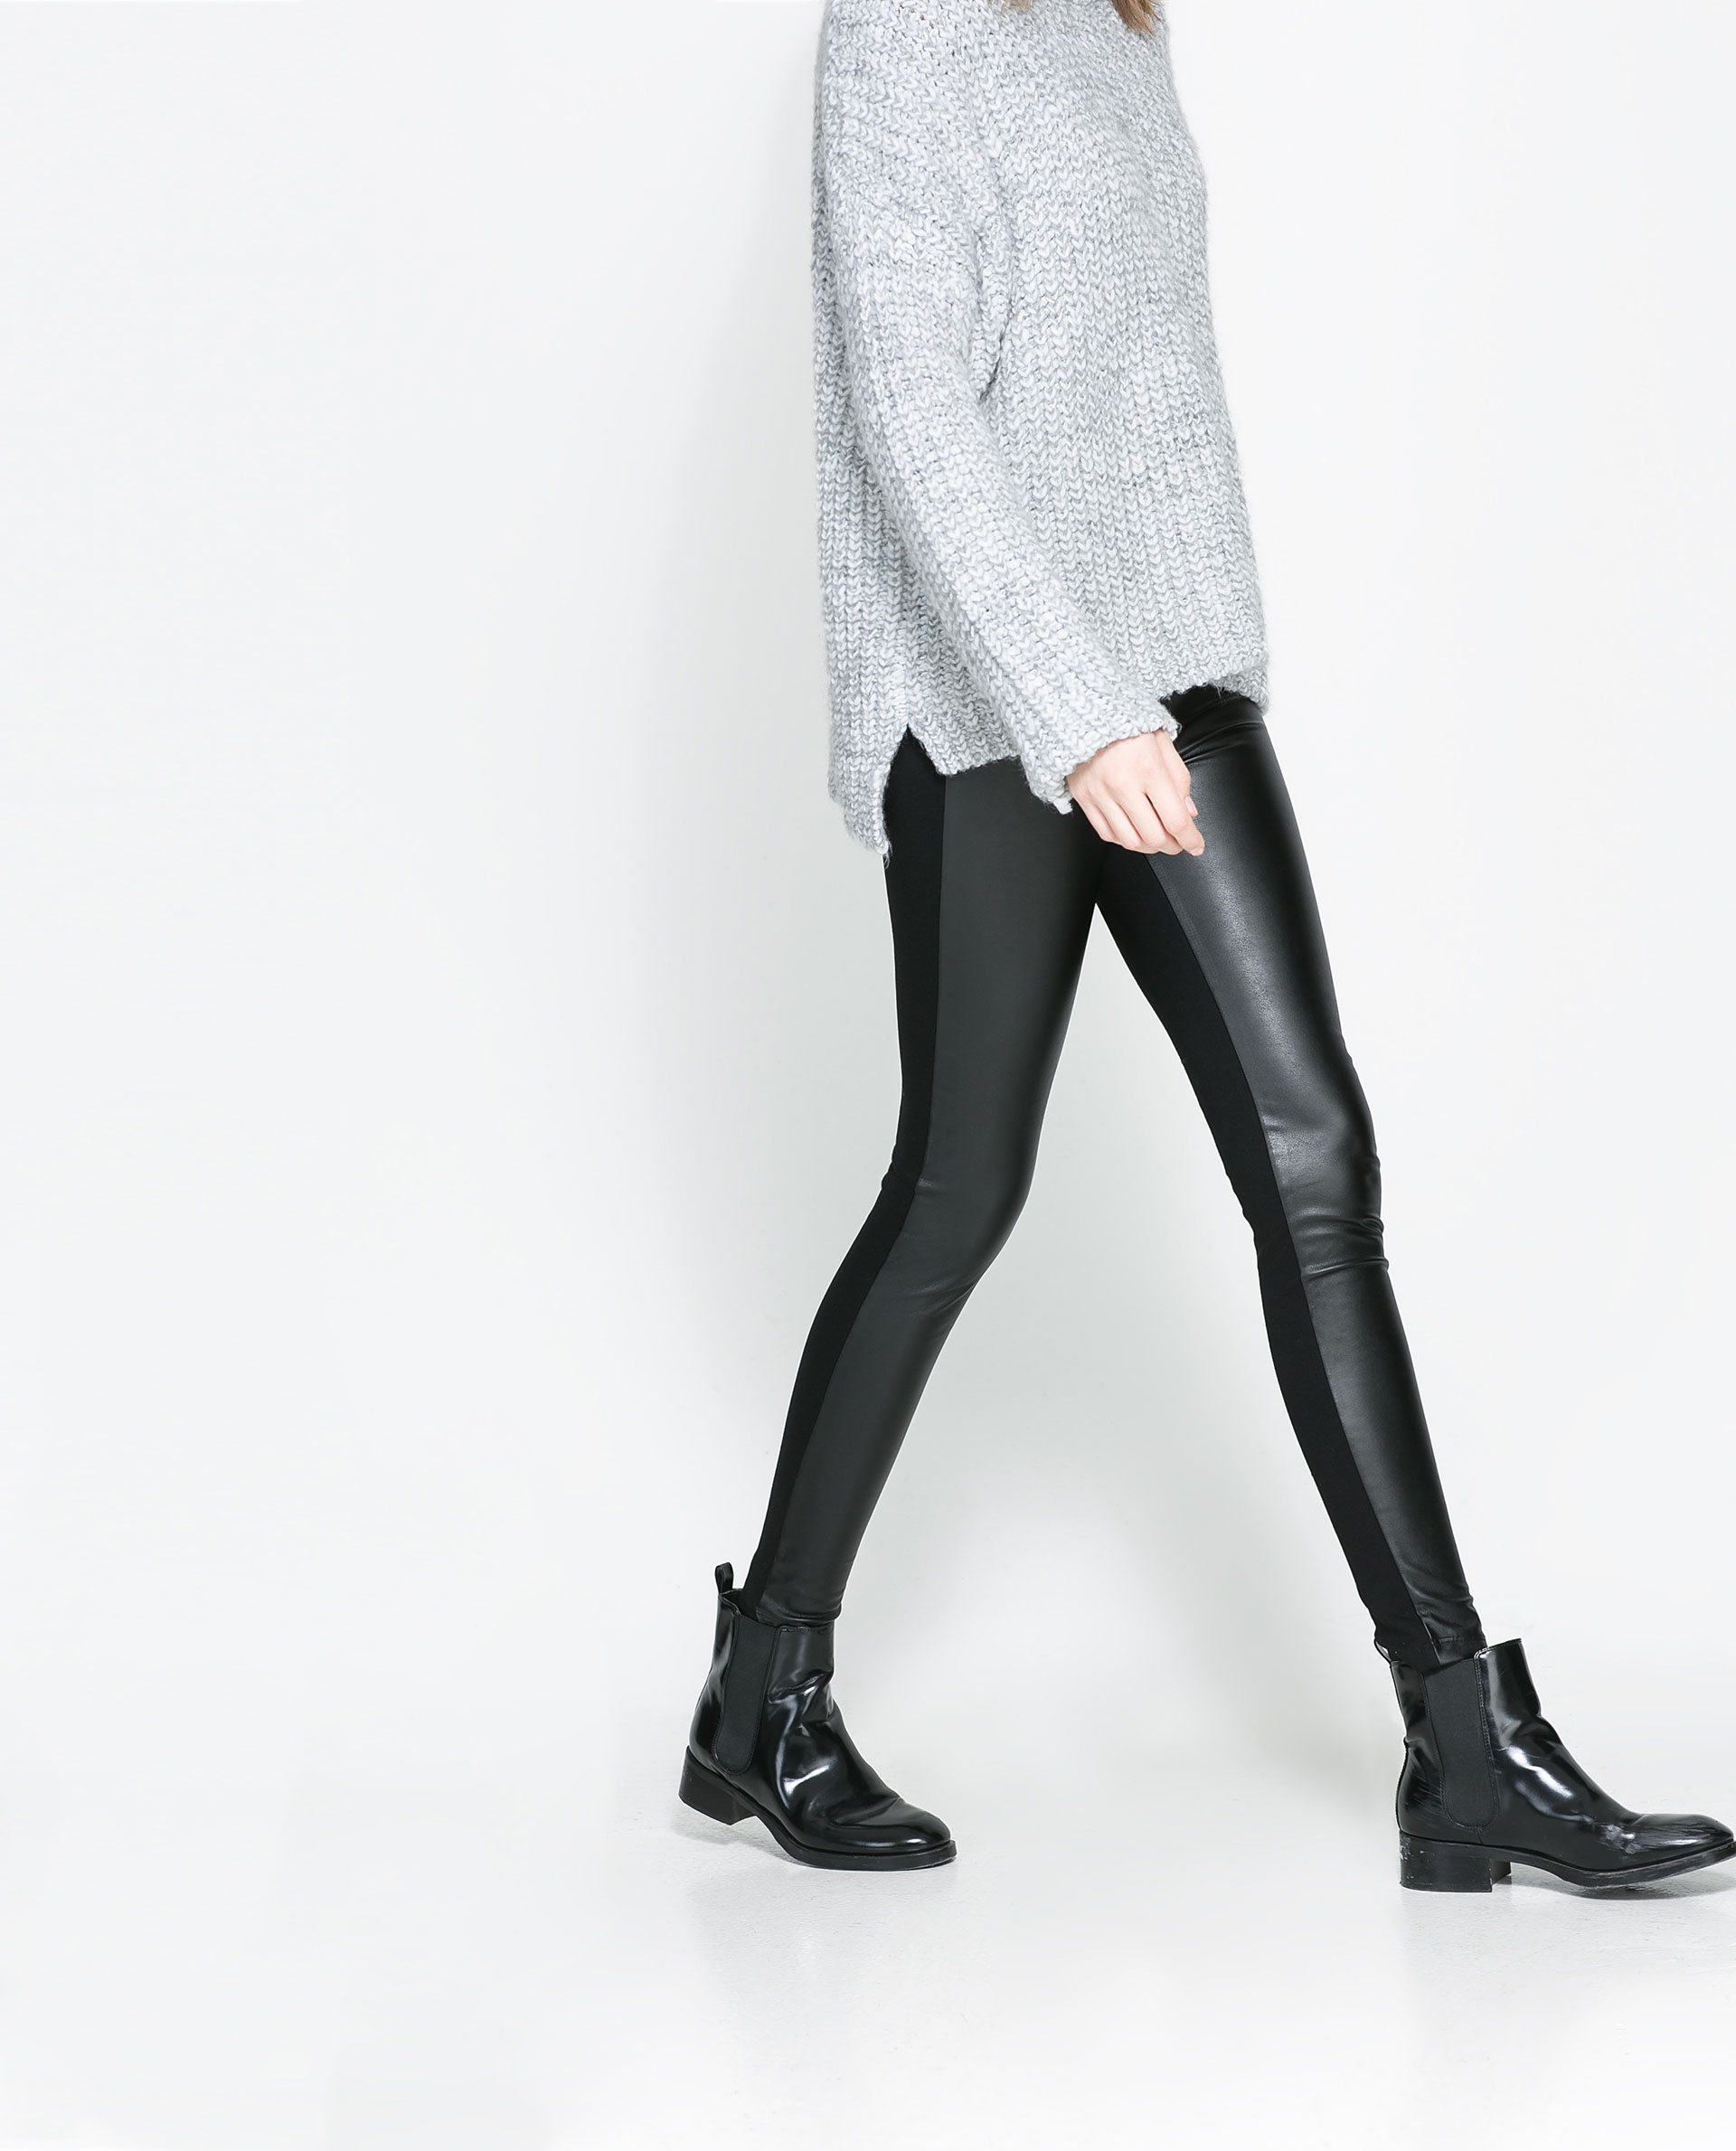 Popular LEATHER TROUSERS  View All  Trousers  WOMAN  ZARA United States